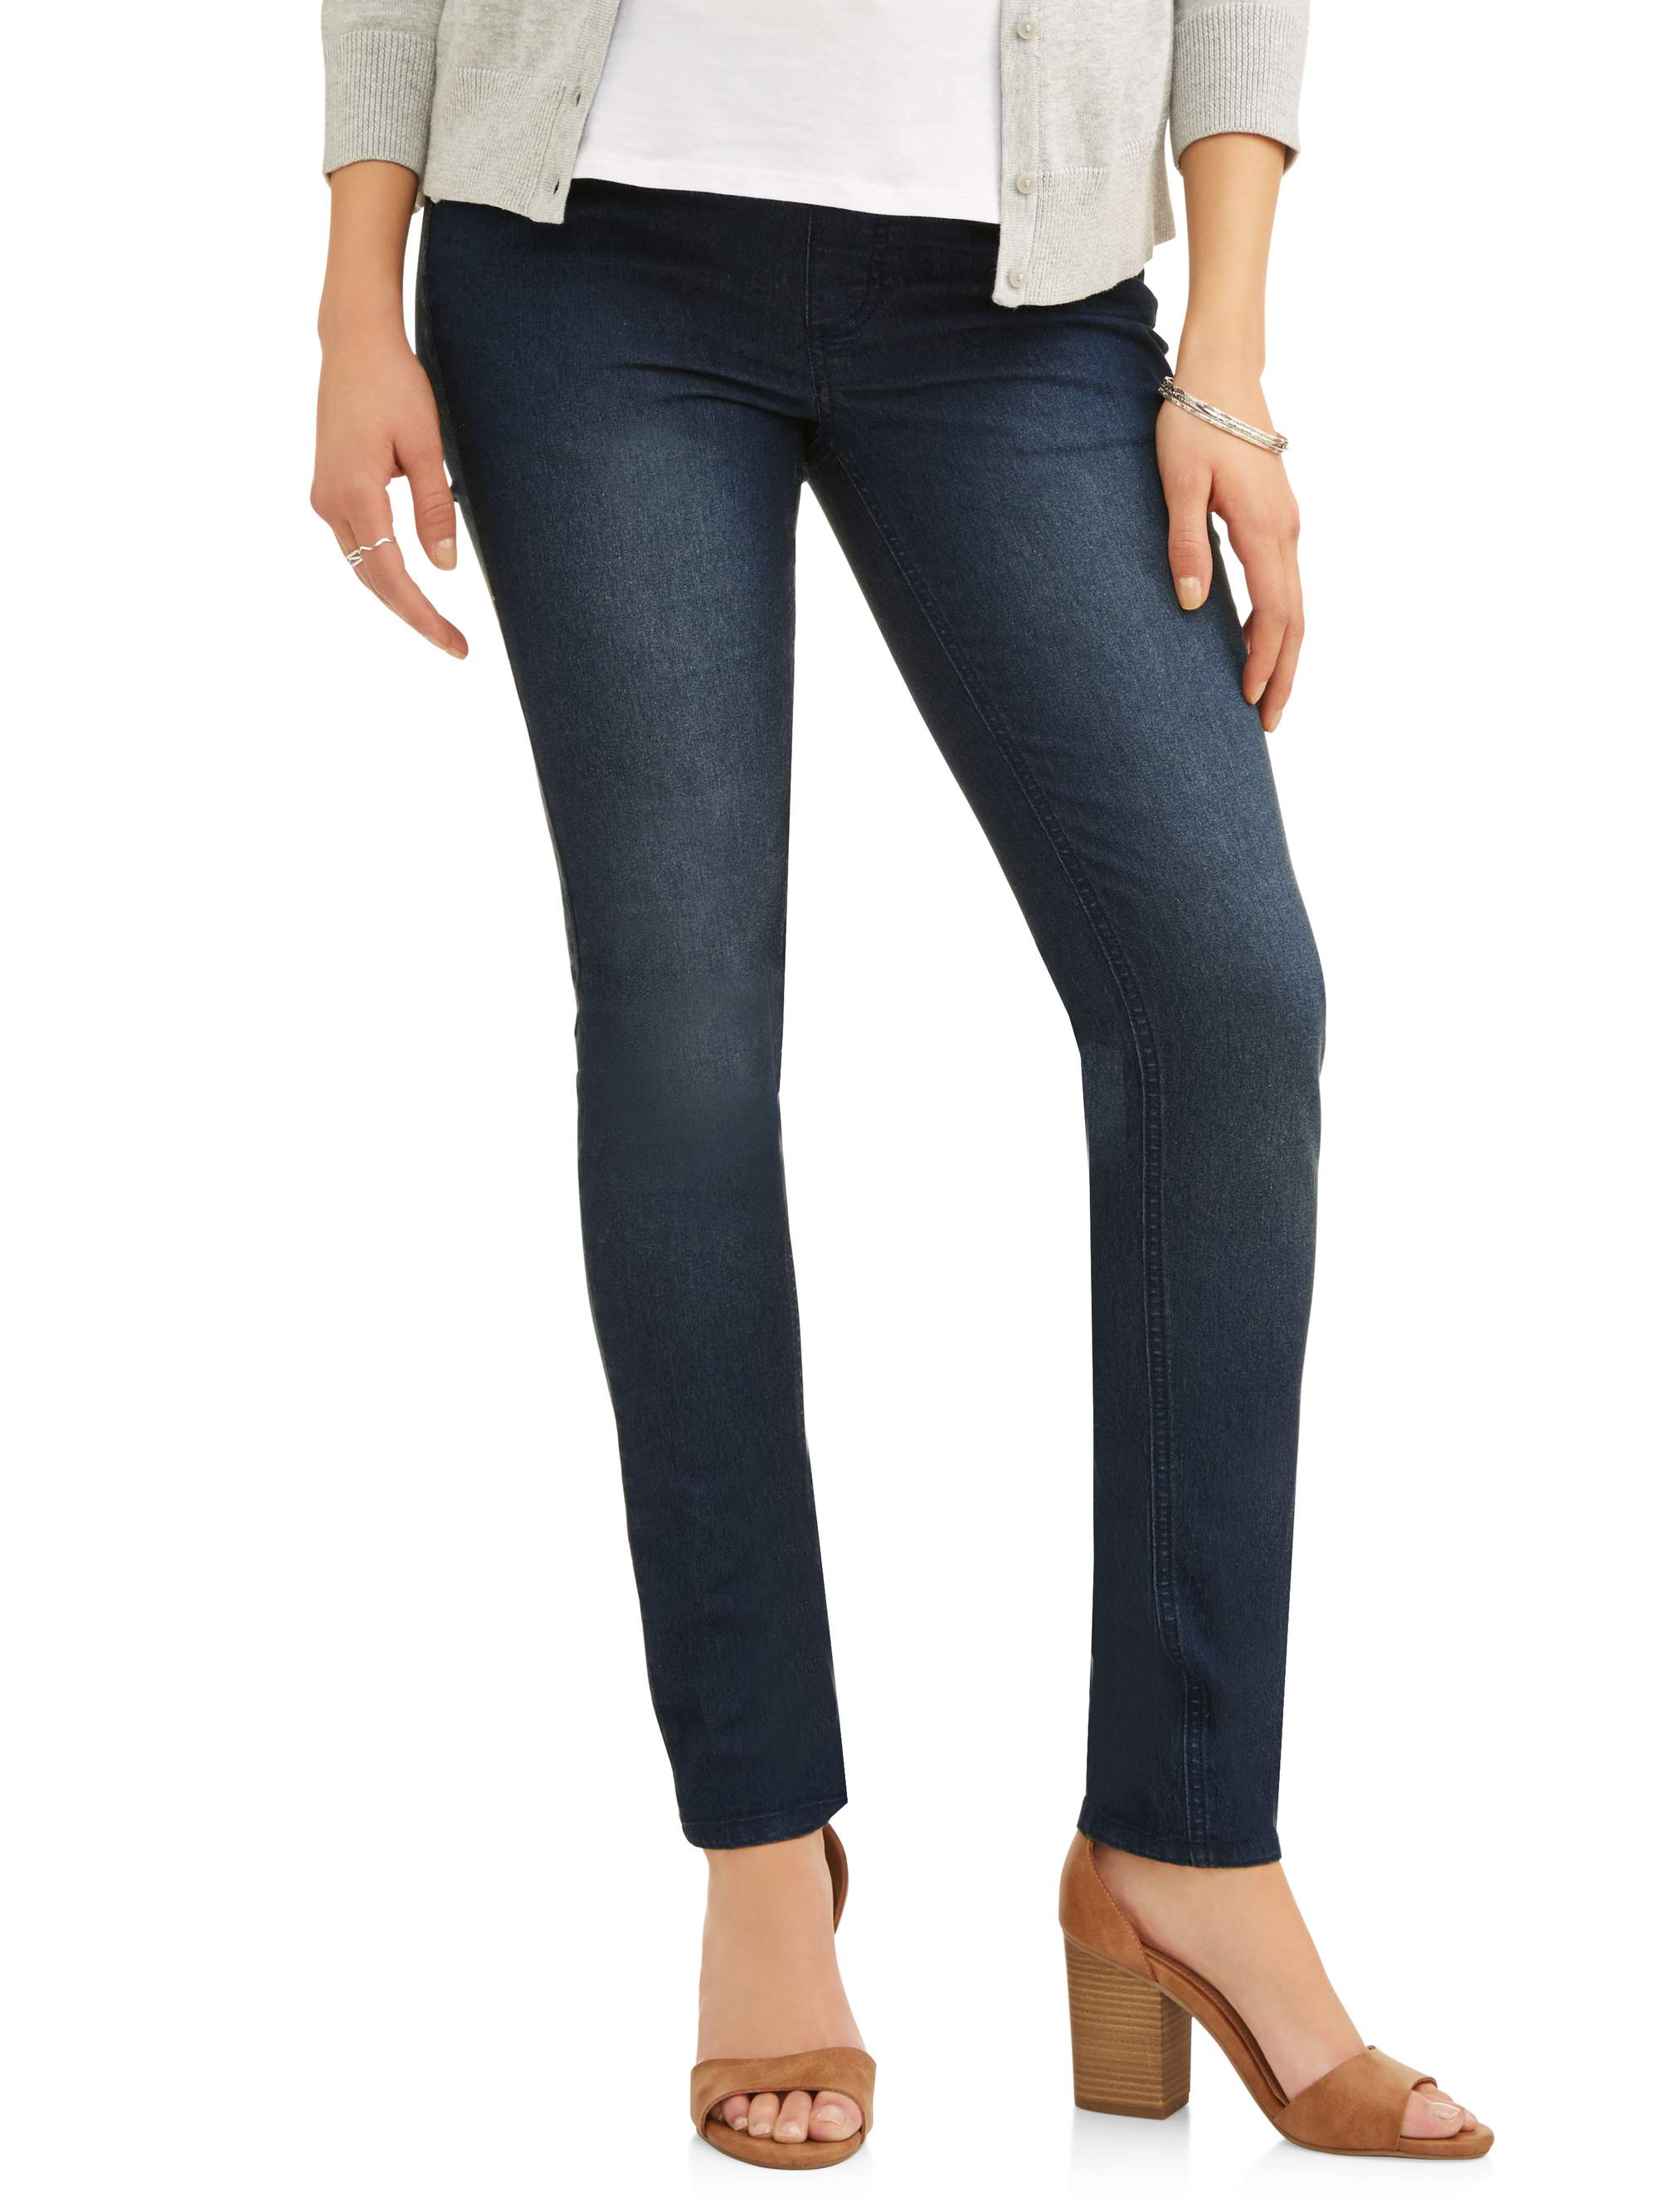 Maternity Demi-Panel Super Soft Skinny Jeans - Available in Plus Sizes